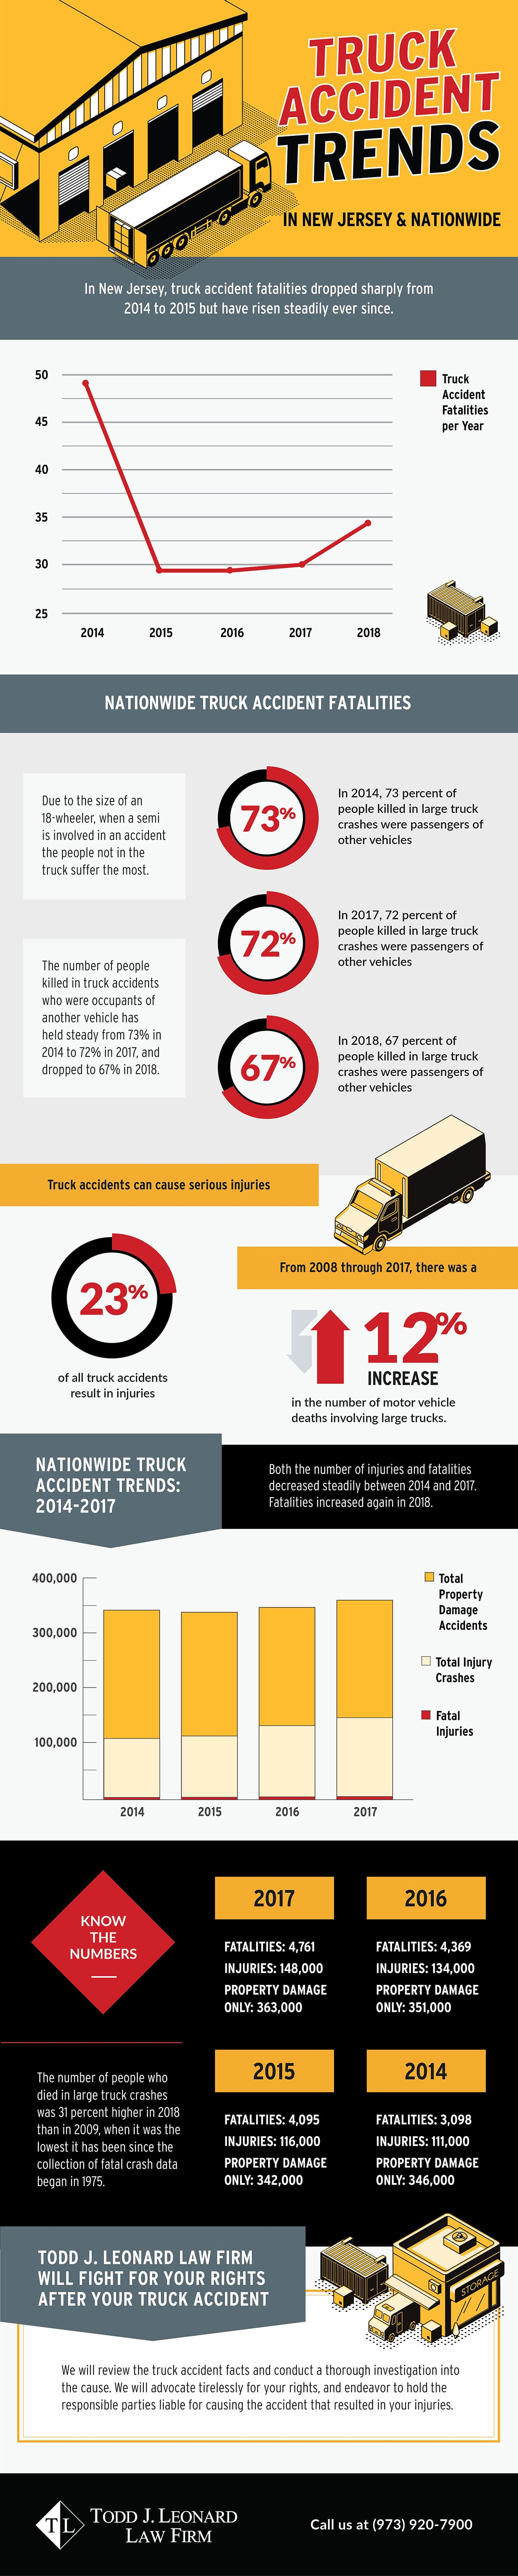 New Jersey Truck Accident Trends